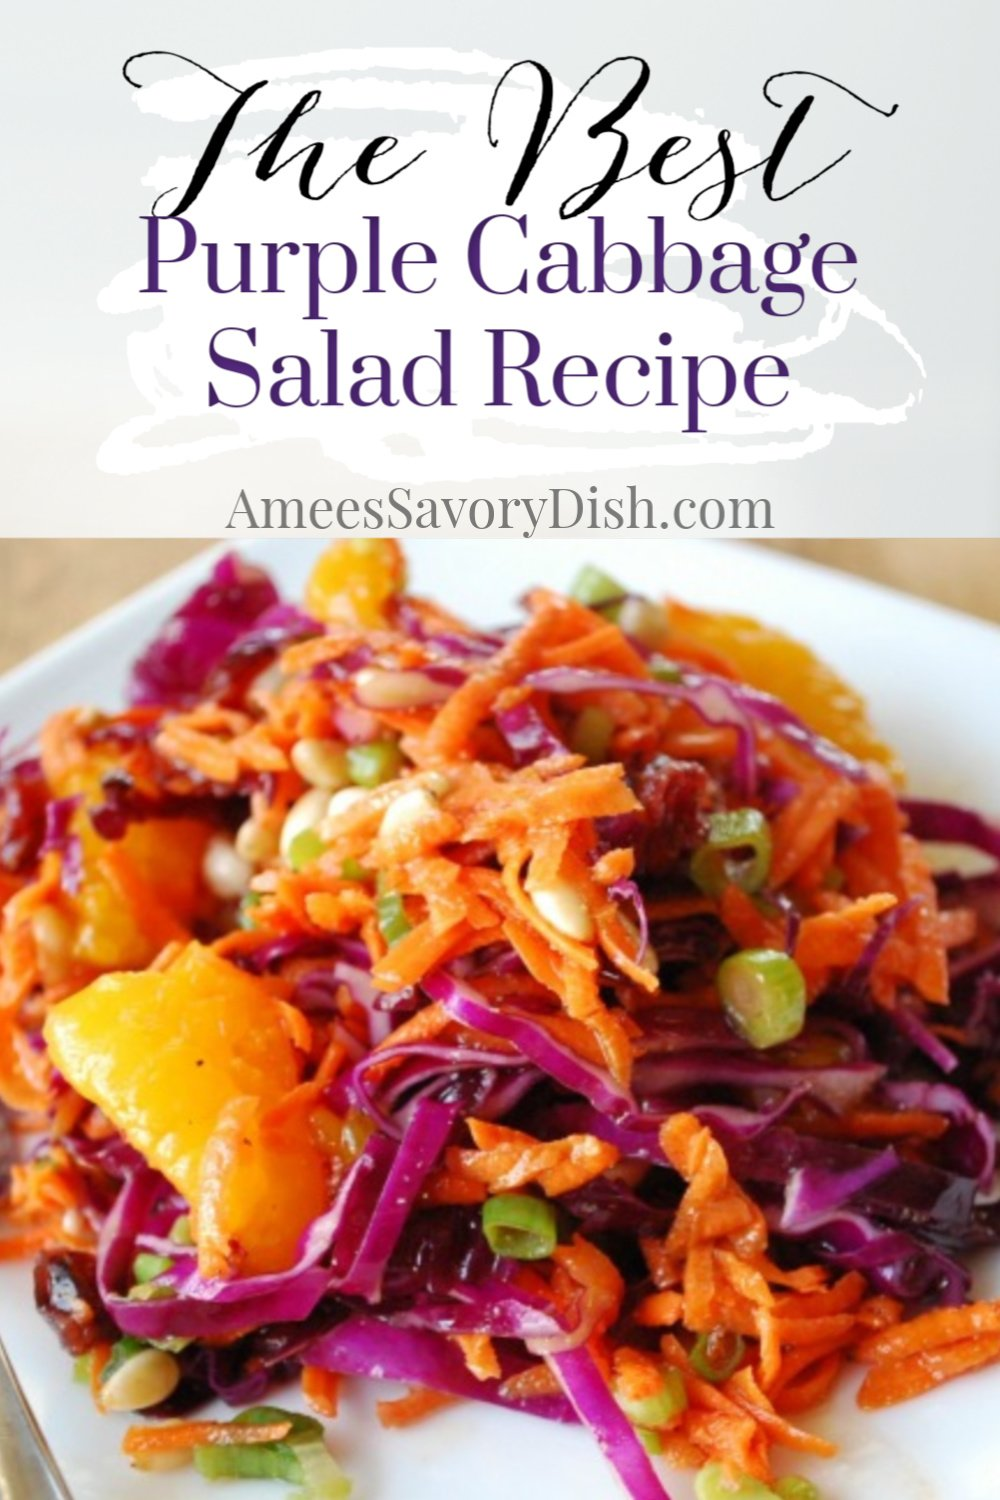 A delicious recipe for fresh purple cabbage salad made with fresh carrots, cabbage, and scallions adapted from the Passover by Design cookbook. via @Ameessavorydish